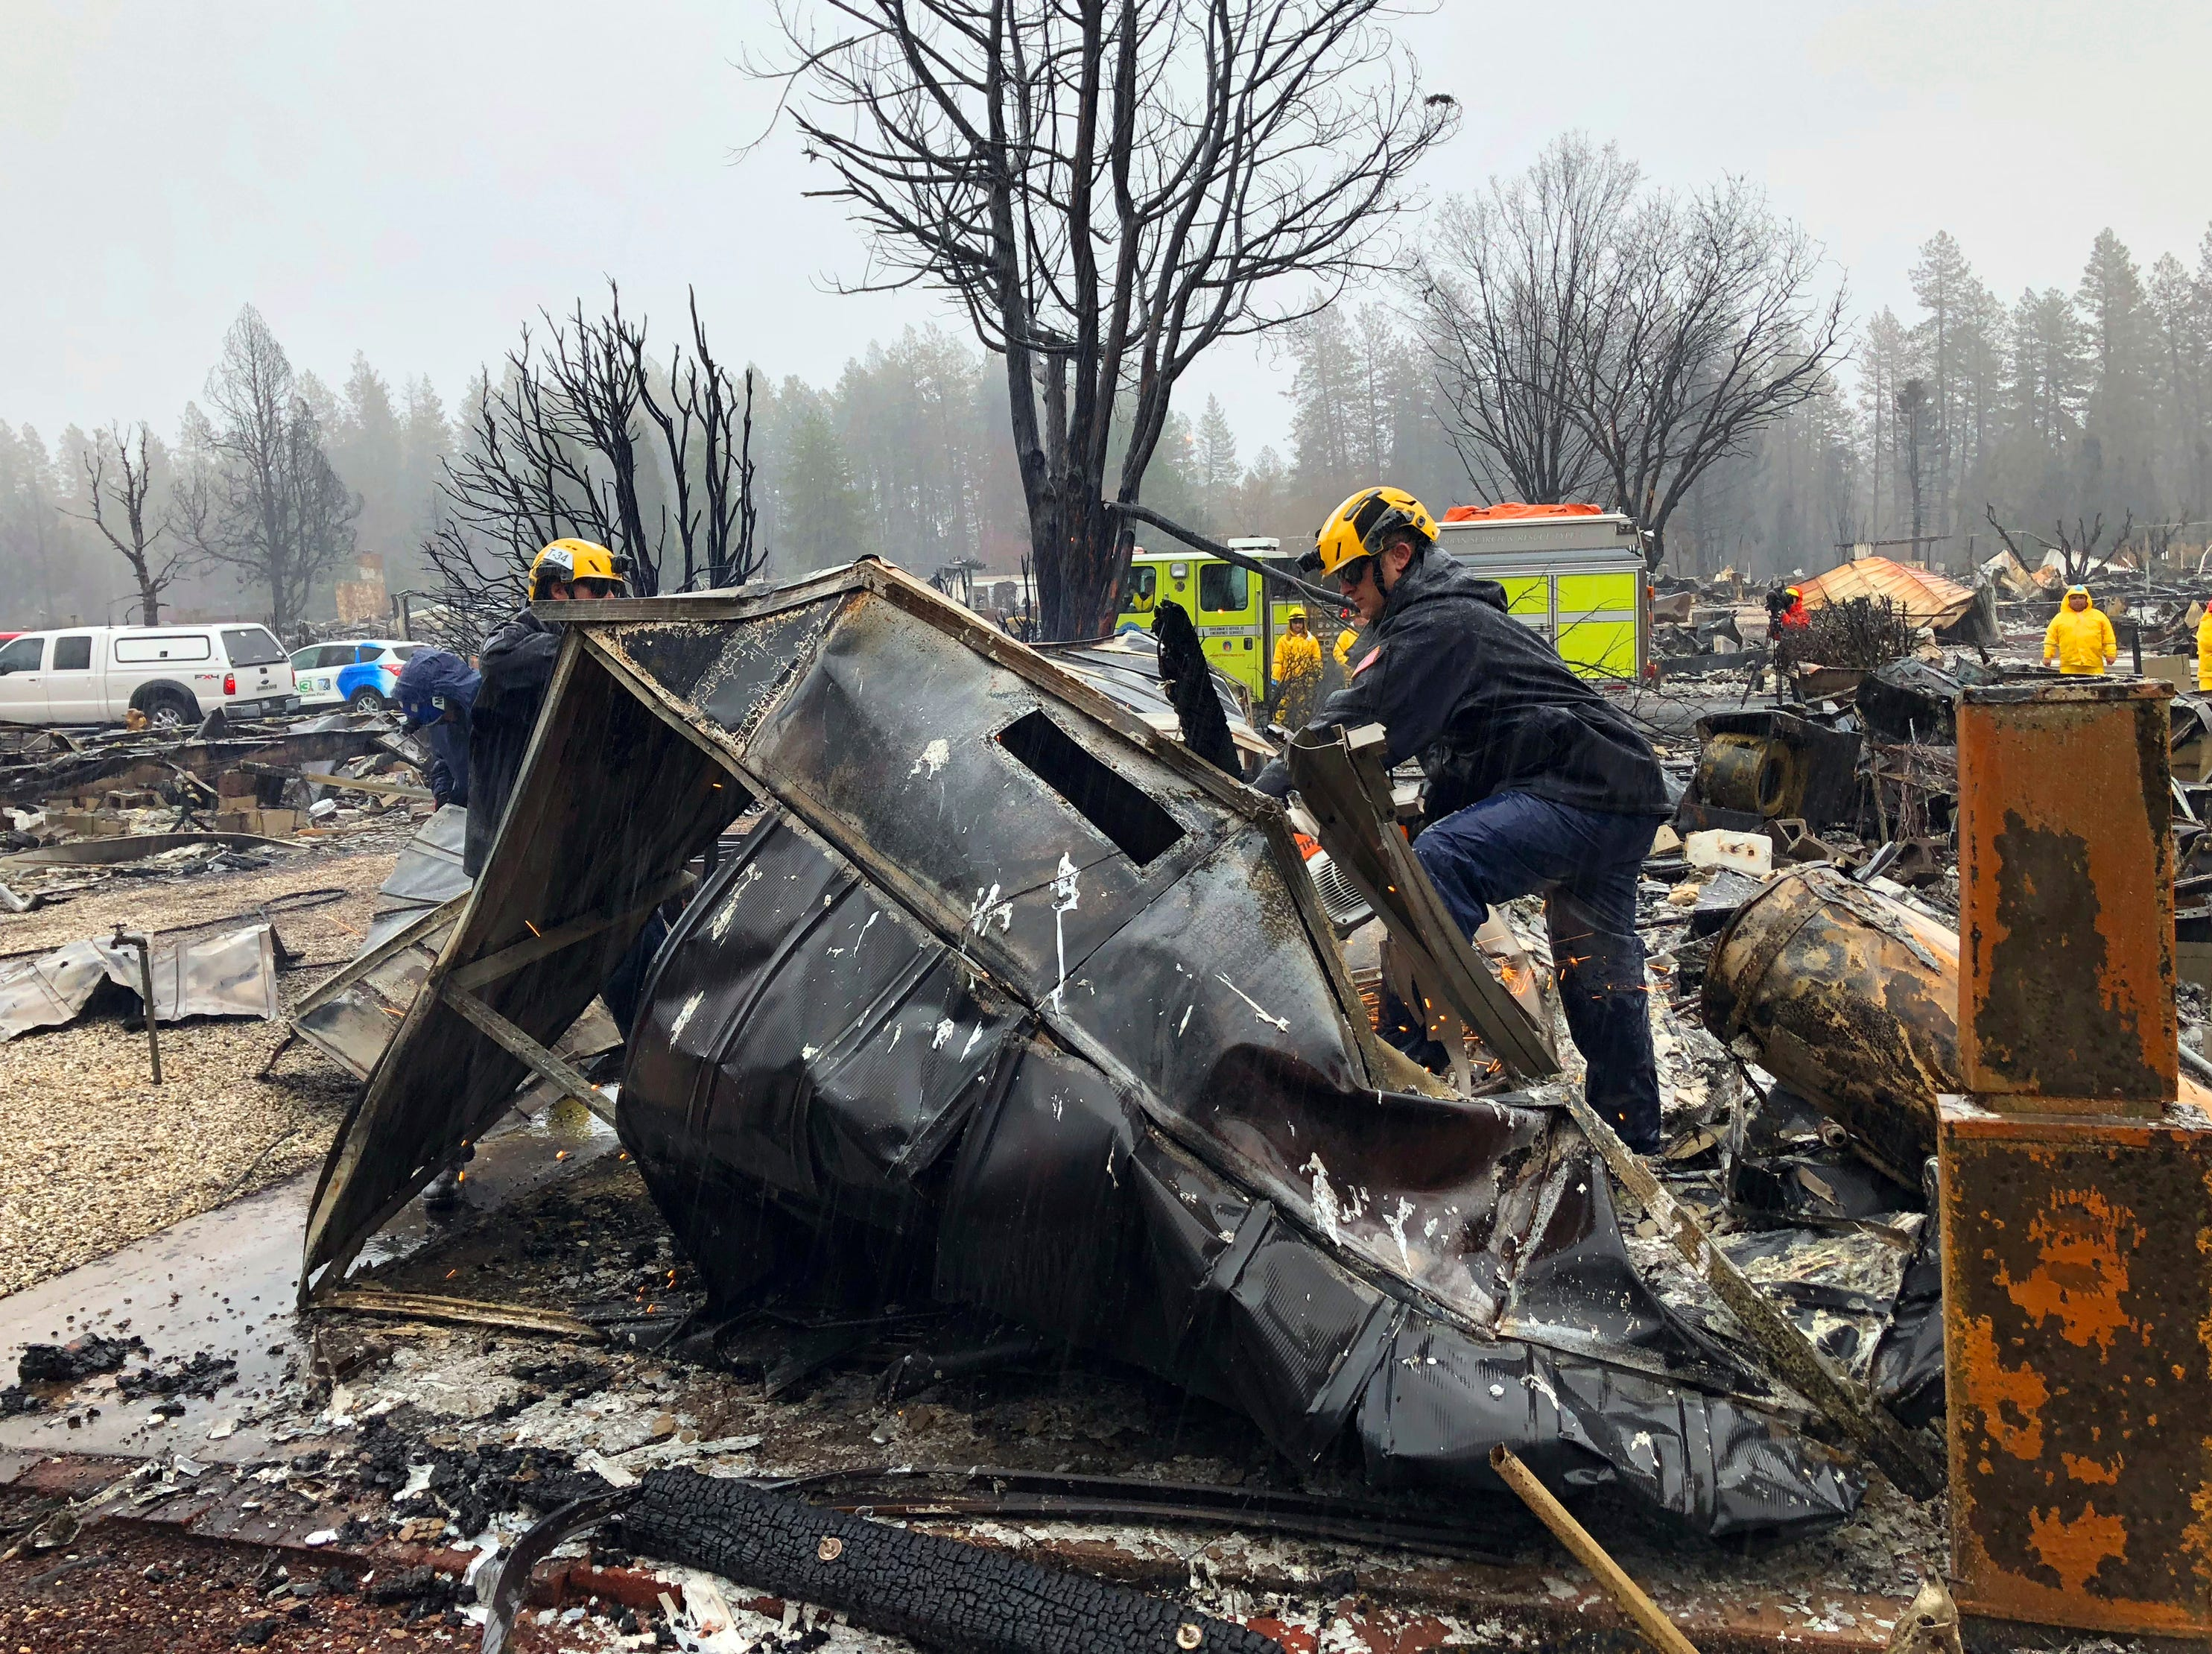 Steven McKnight, right, and Daniel Hansen saw through large pieces of sheet metal so they can be moved to allow cadaver dogs to search beneath them for signs of human remains at a mobile home park in Paradise, Calif., Friday, Nov. 23, 2018. They said the mobile home park had already been hand searched, so they were re-examining it with search dogs.